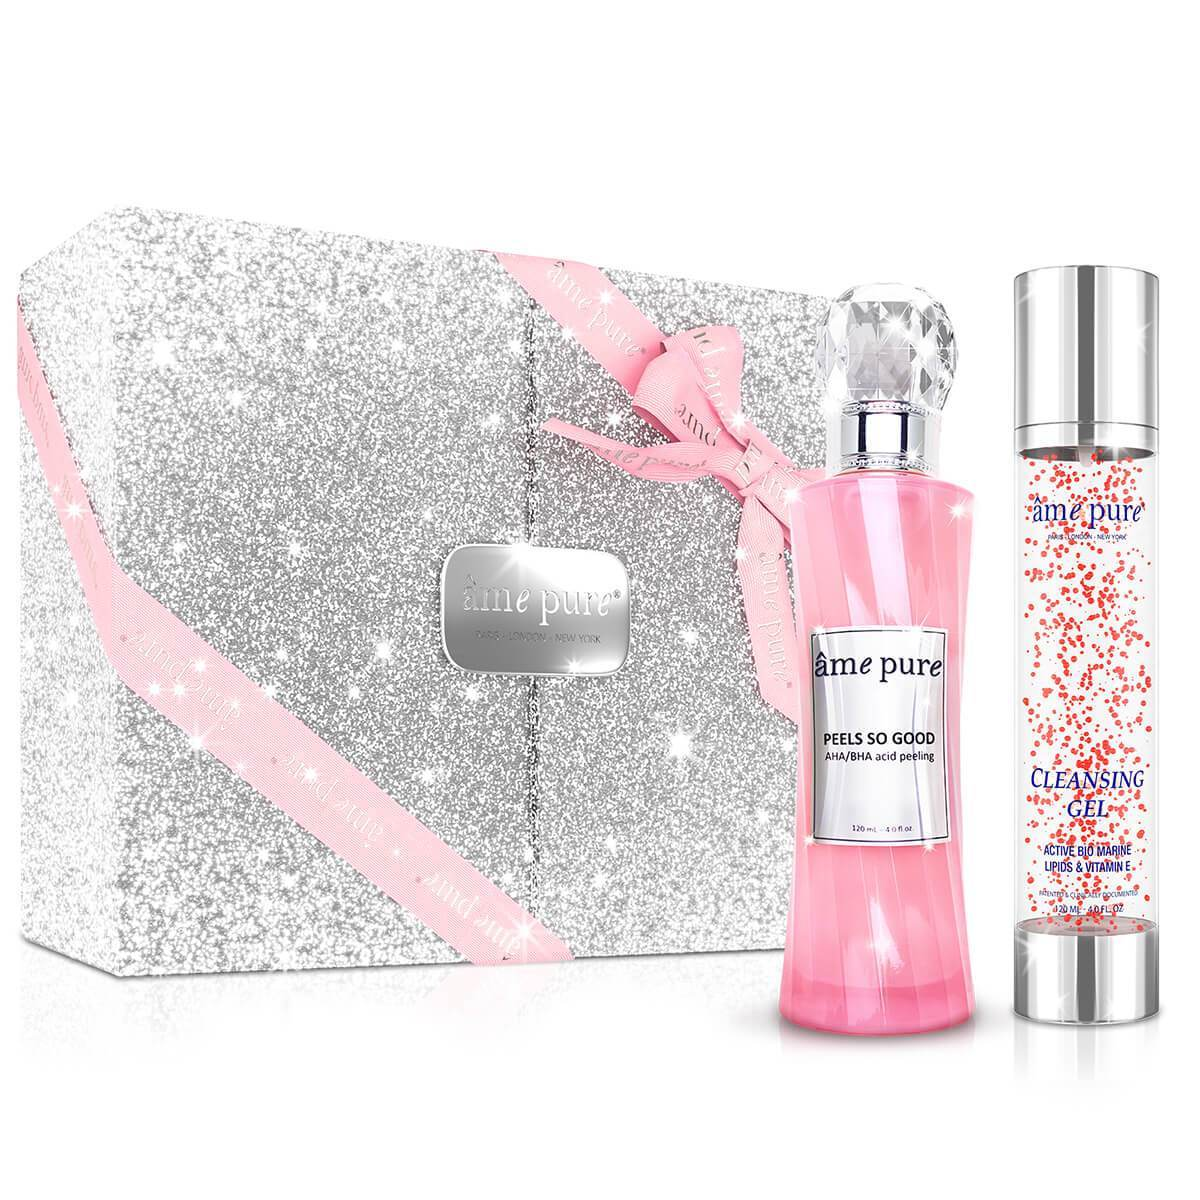 Peels So Good™ & Cleansing Gel + Boite Cadeau